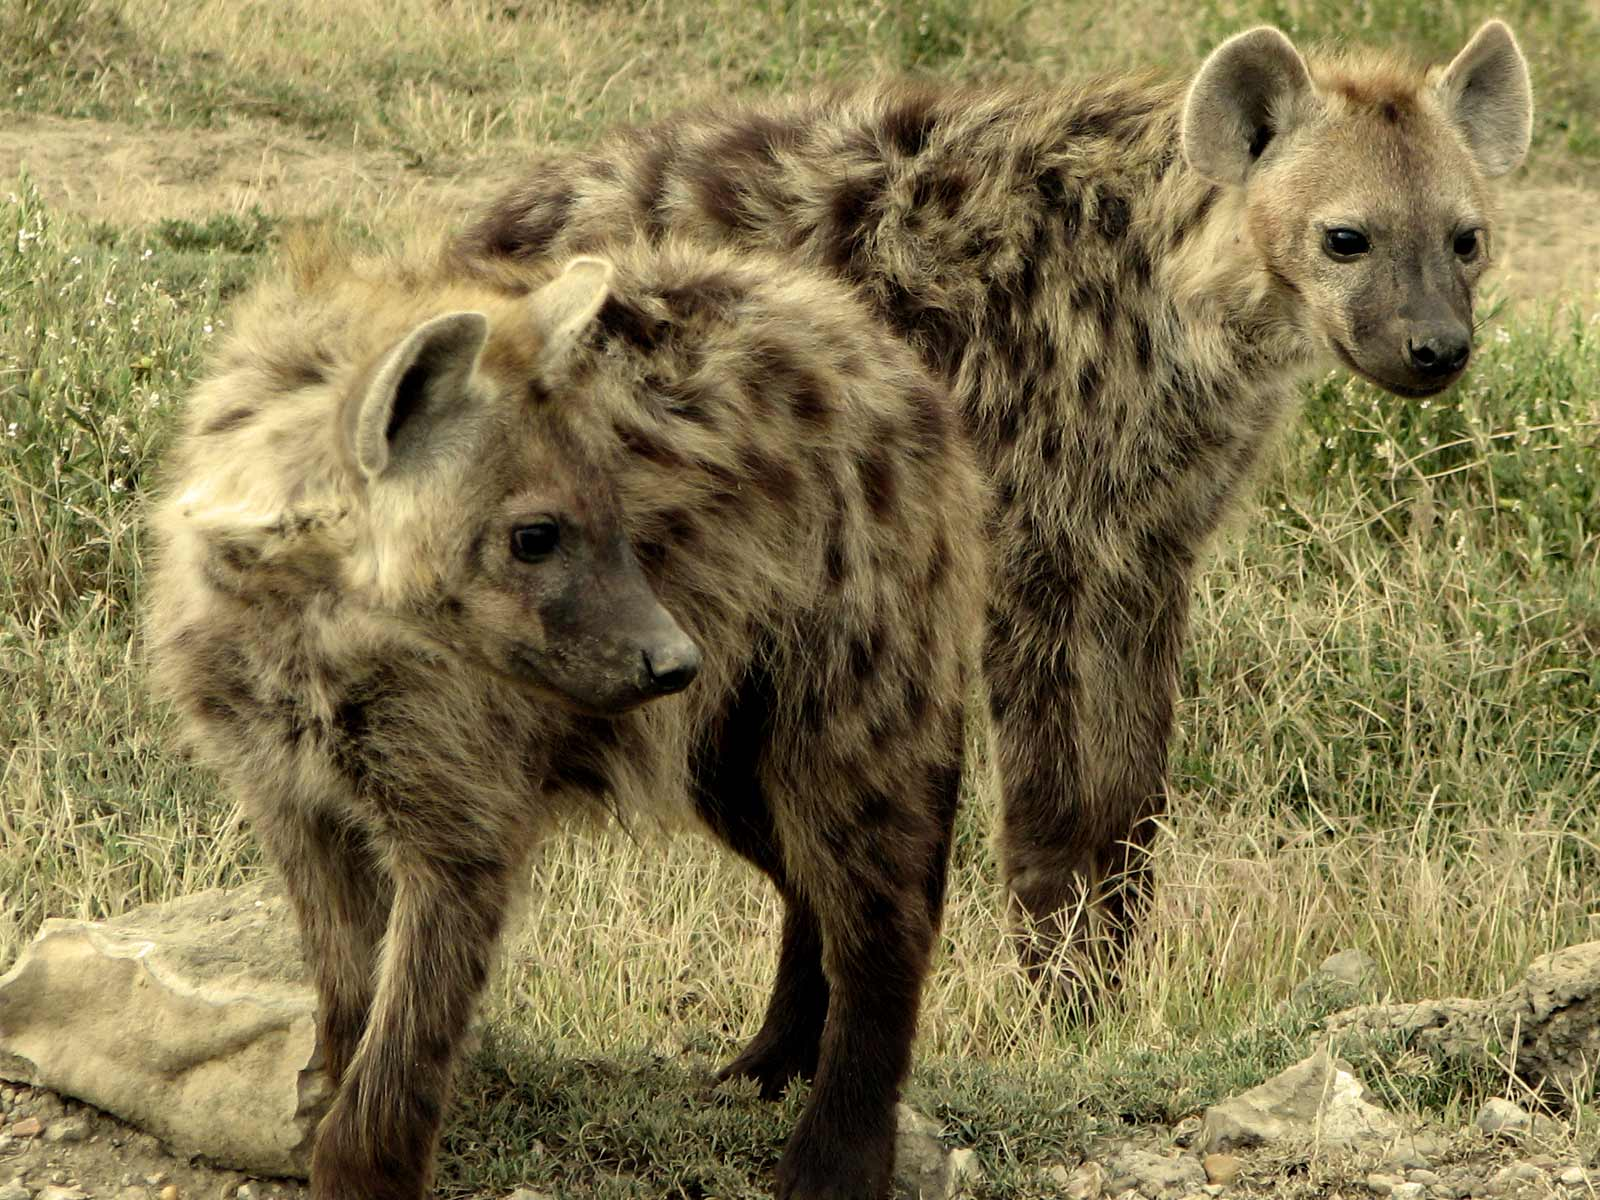 Beautiful africa safari animals hyena wildlife of africa kenya nigeria